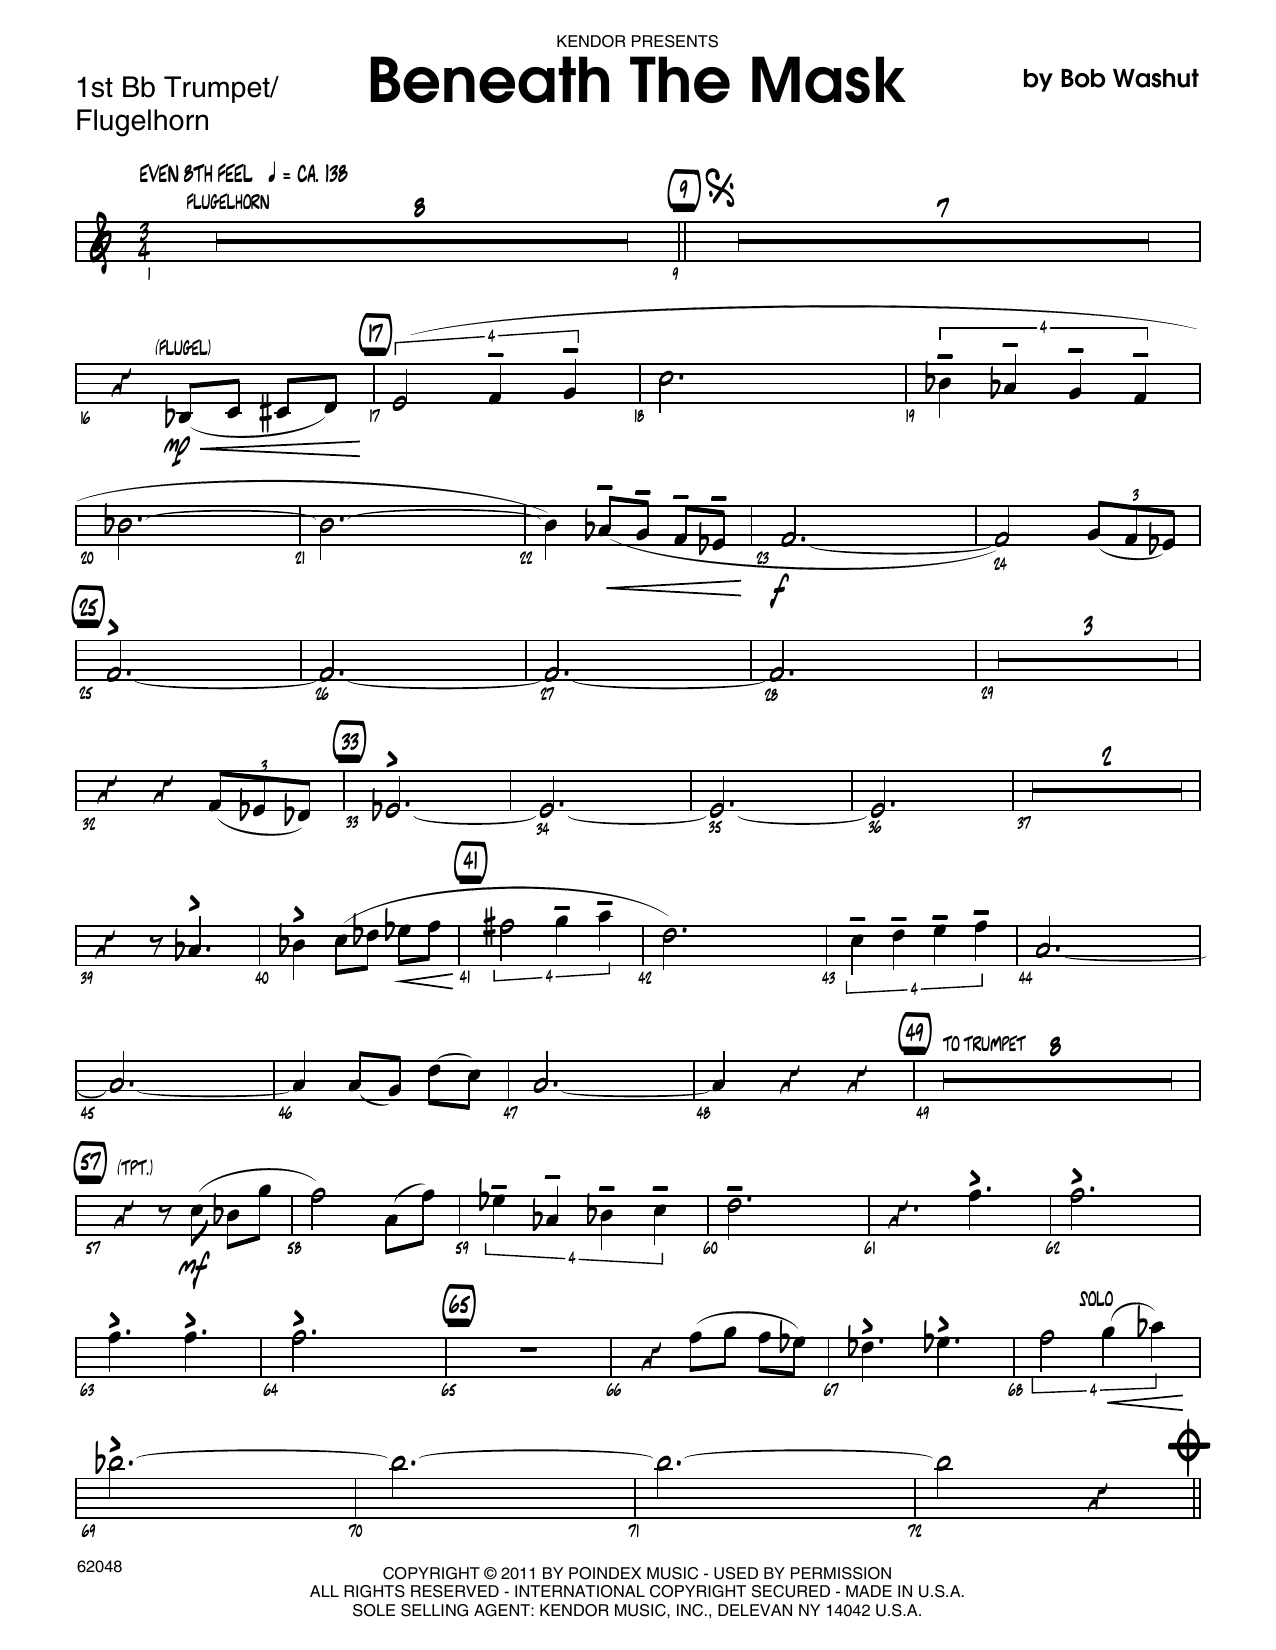 Beneath The Mask 1st Bb Trumpet At Stantons Sheet Music